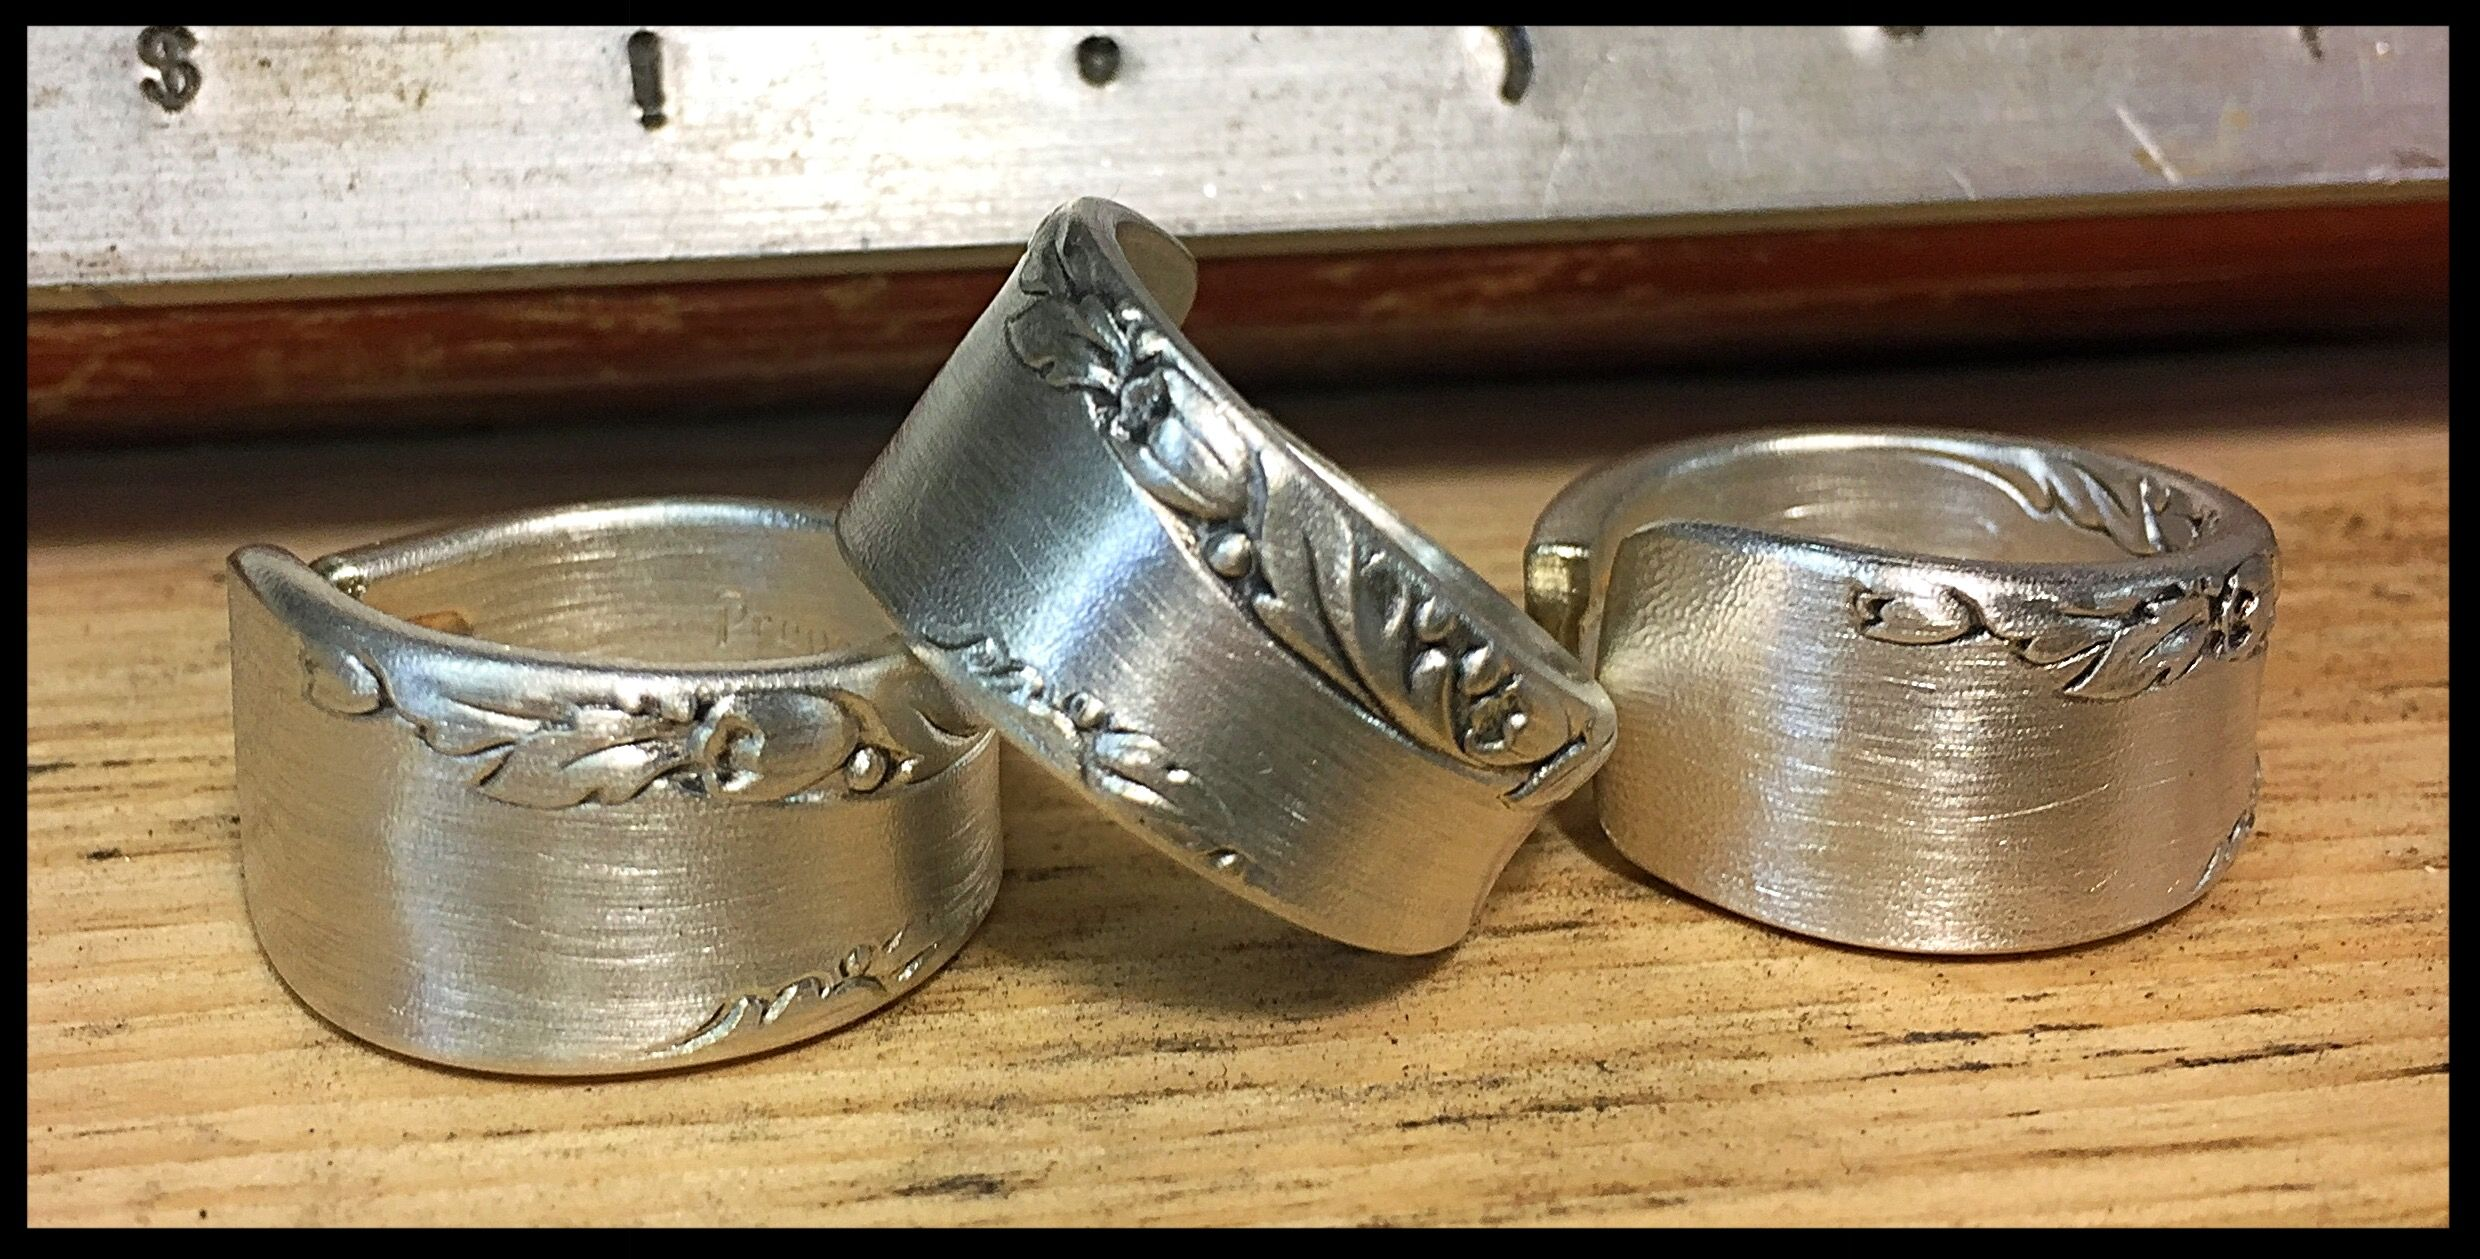 Custom order- stamped (inside) silver spoon/fork handle cuff style rings- made for Julie's Junktique on Etsy.com